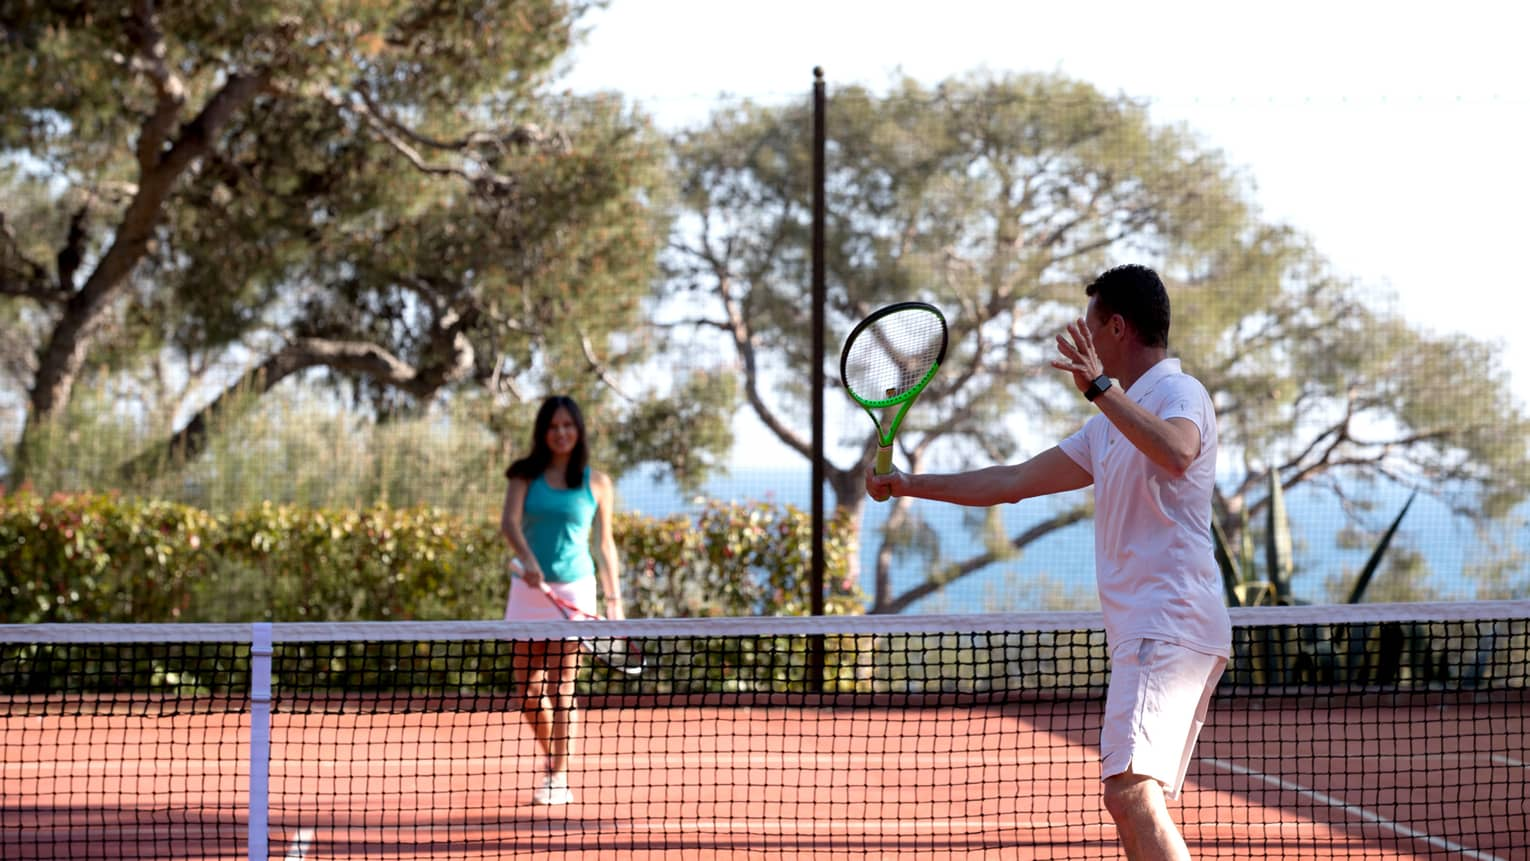 Man swing tennis racket, woman on other side of net